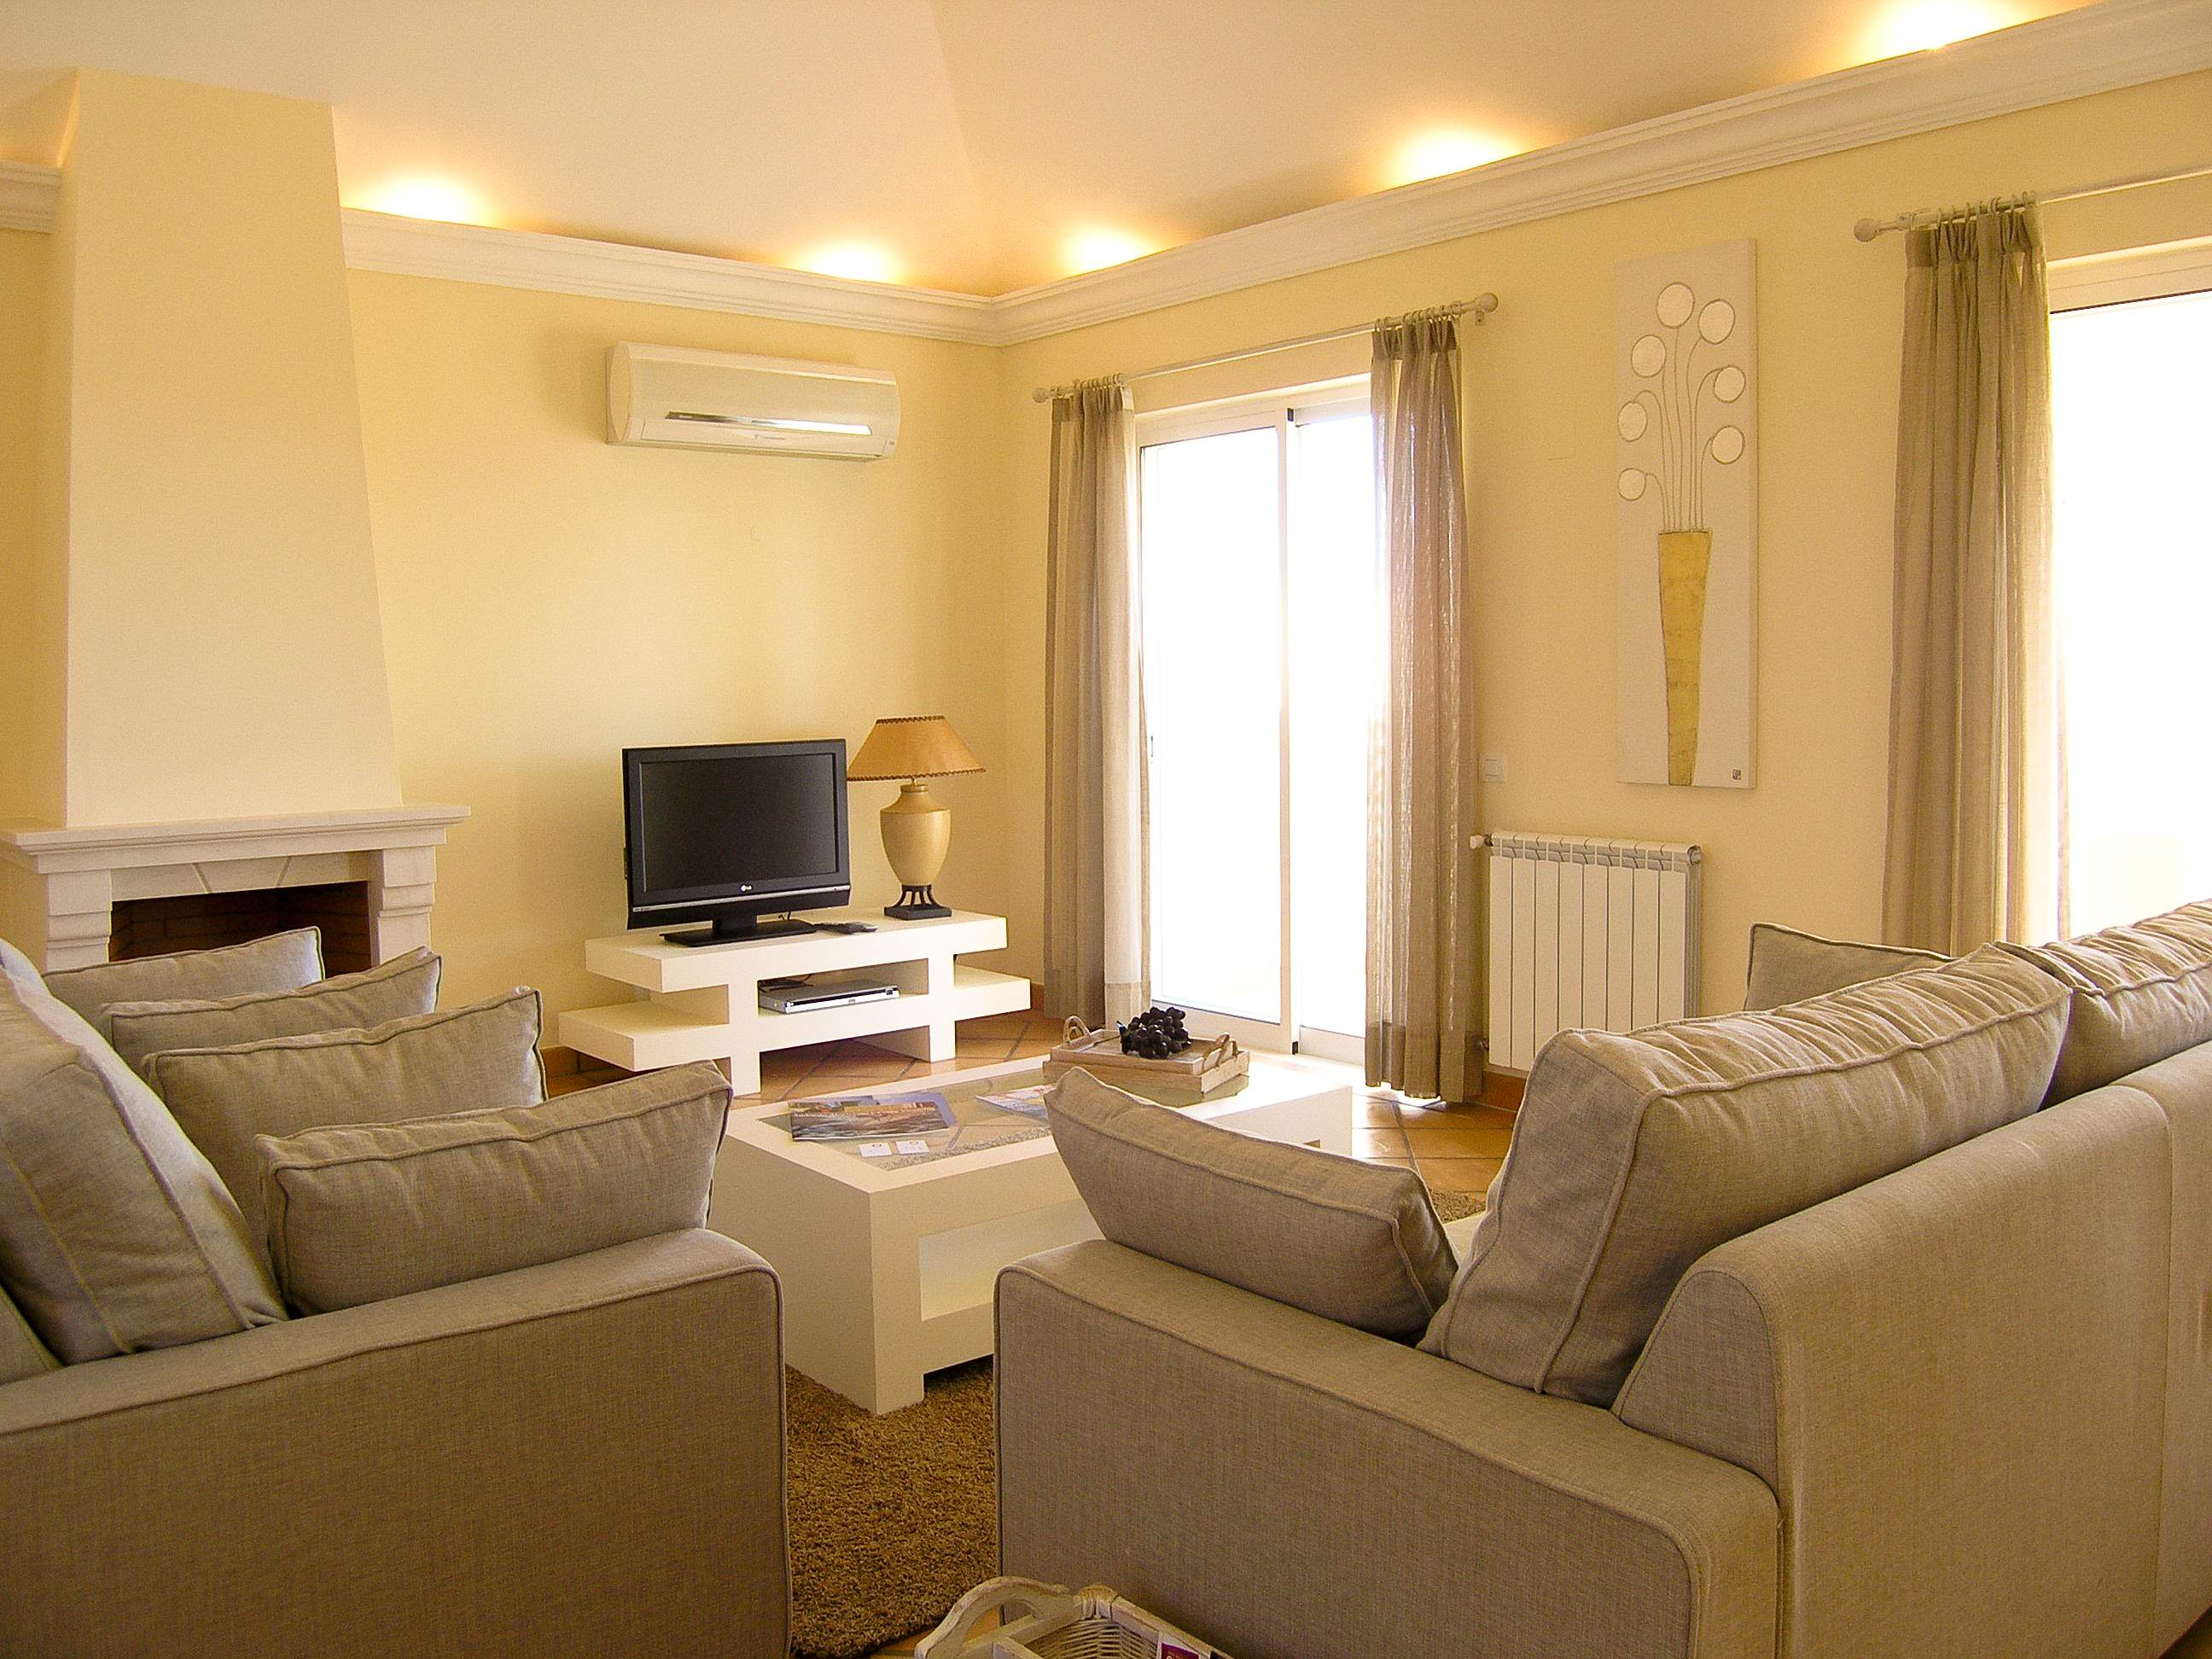 Martinhal Vilas Mimosa Two Bedroom, 2 bedroom villa in Martinhal Sagres, Algarve Photo #8